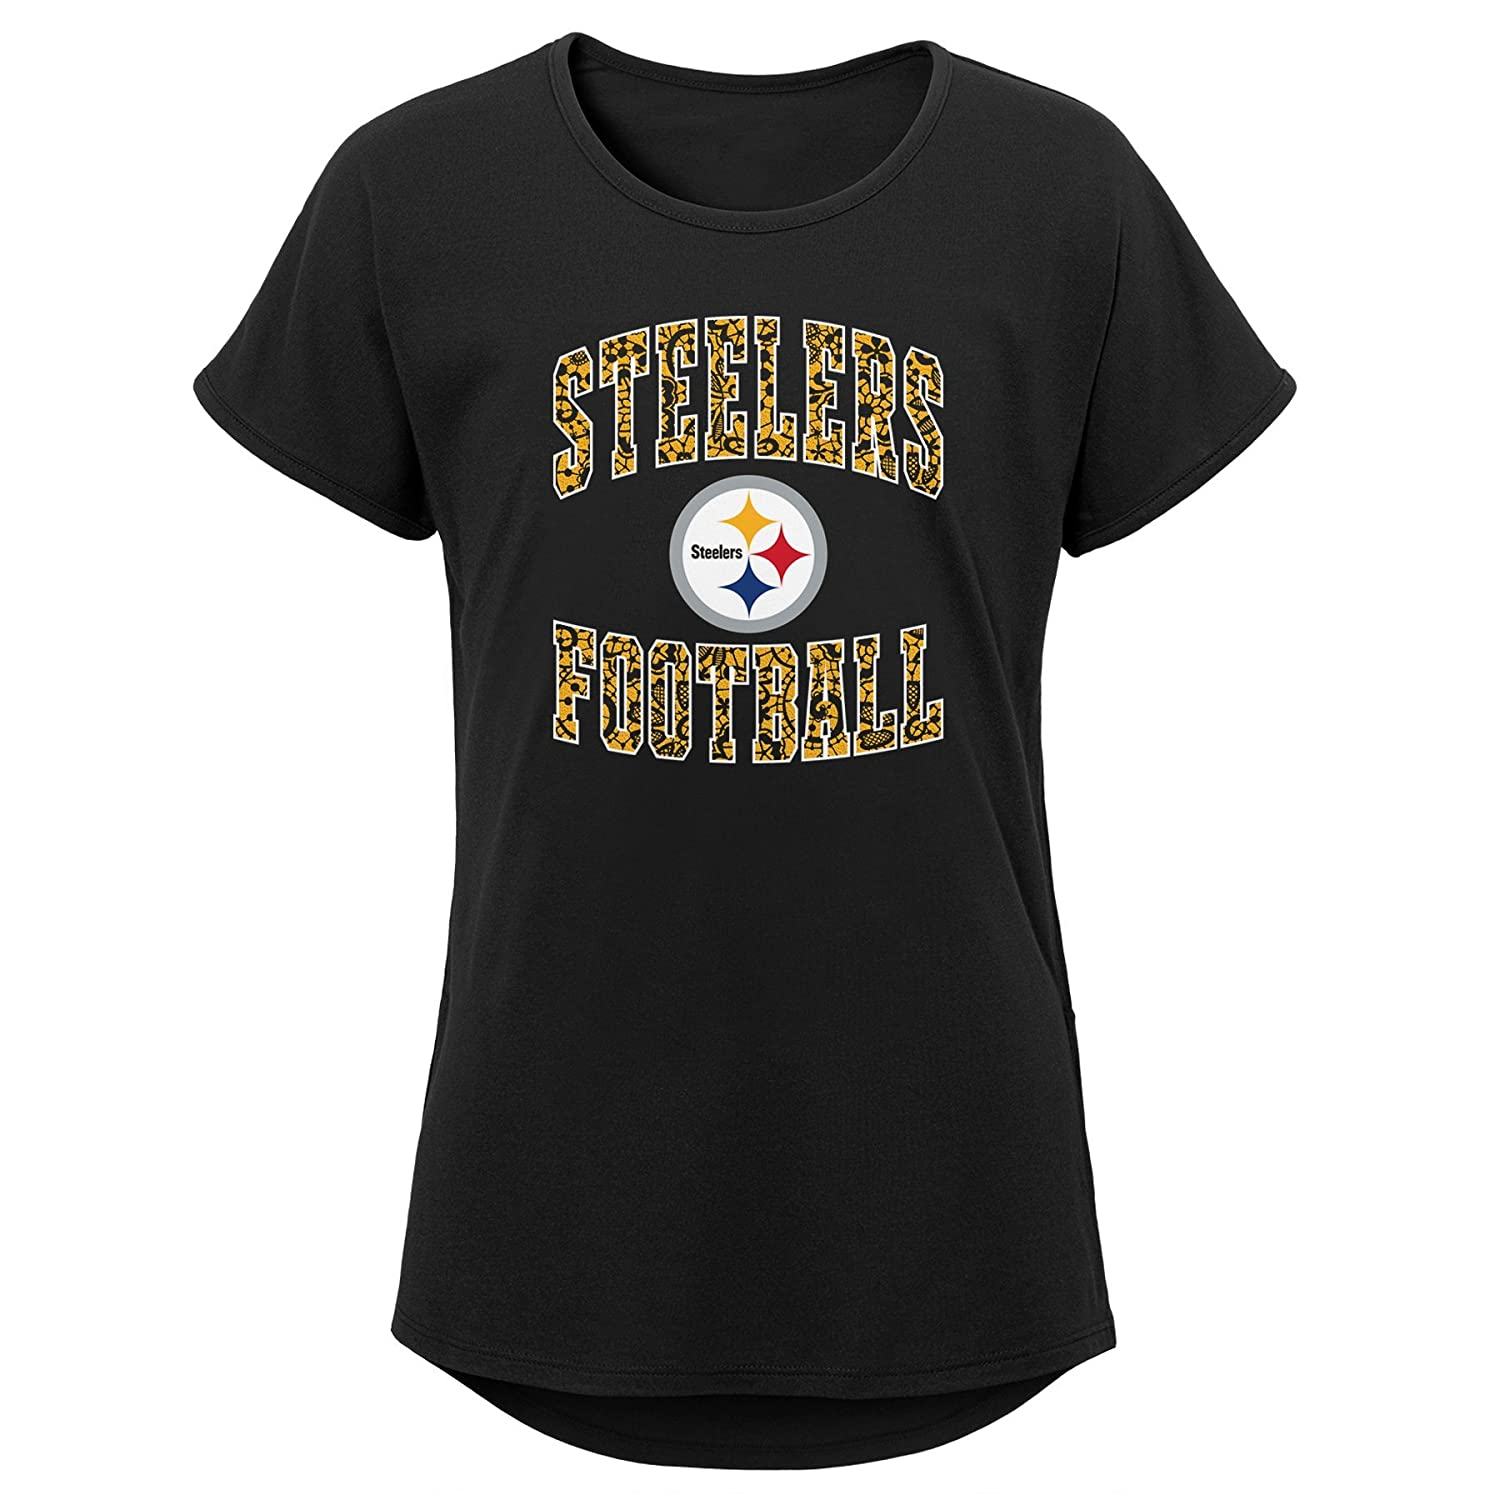 Outerstuff NFL NFL Pittsburgh Steelers Youth Girls Team Lace Short Sleeve Dolman Tee Black Youth Large 14